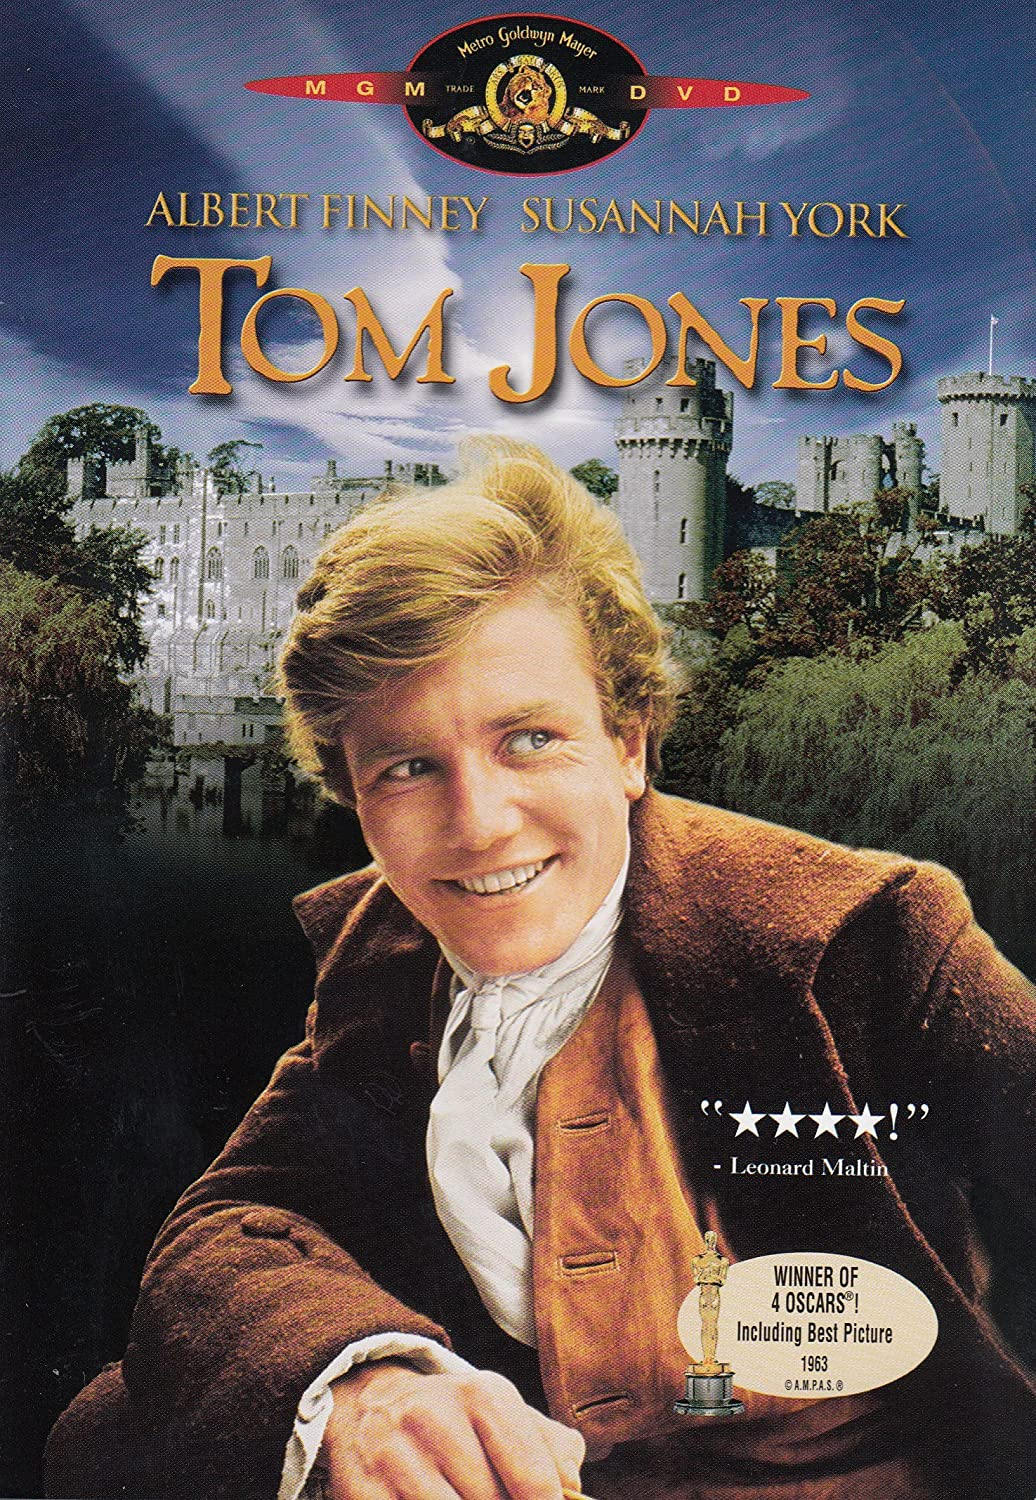 Image result for albert finney tom jones